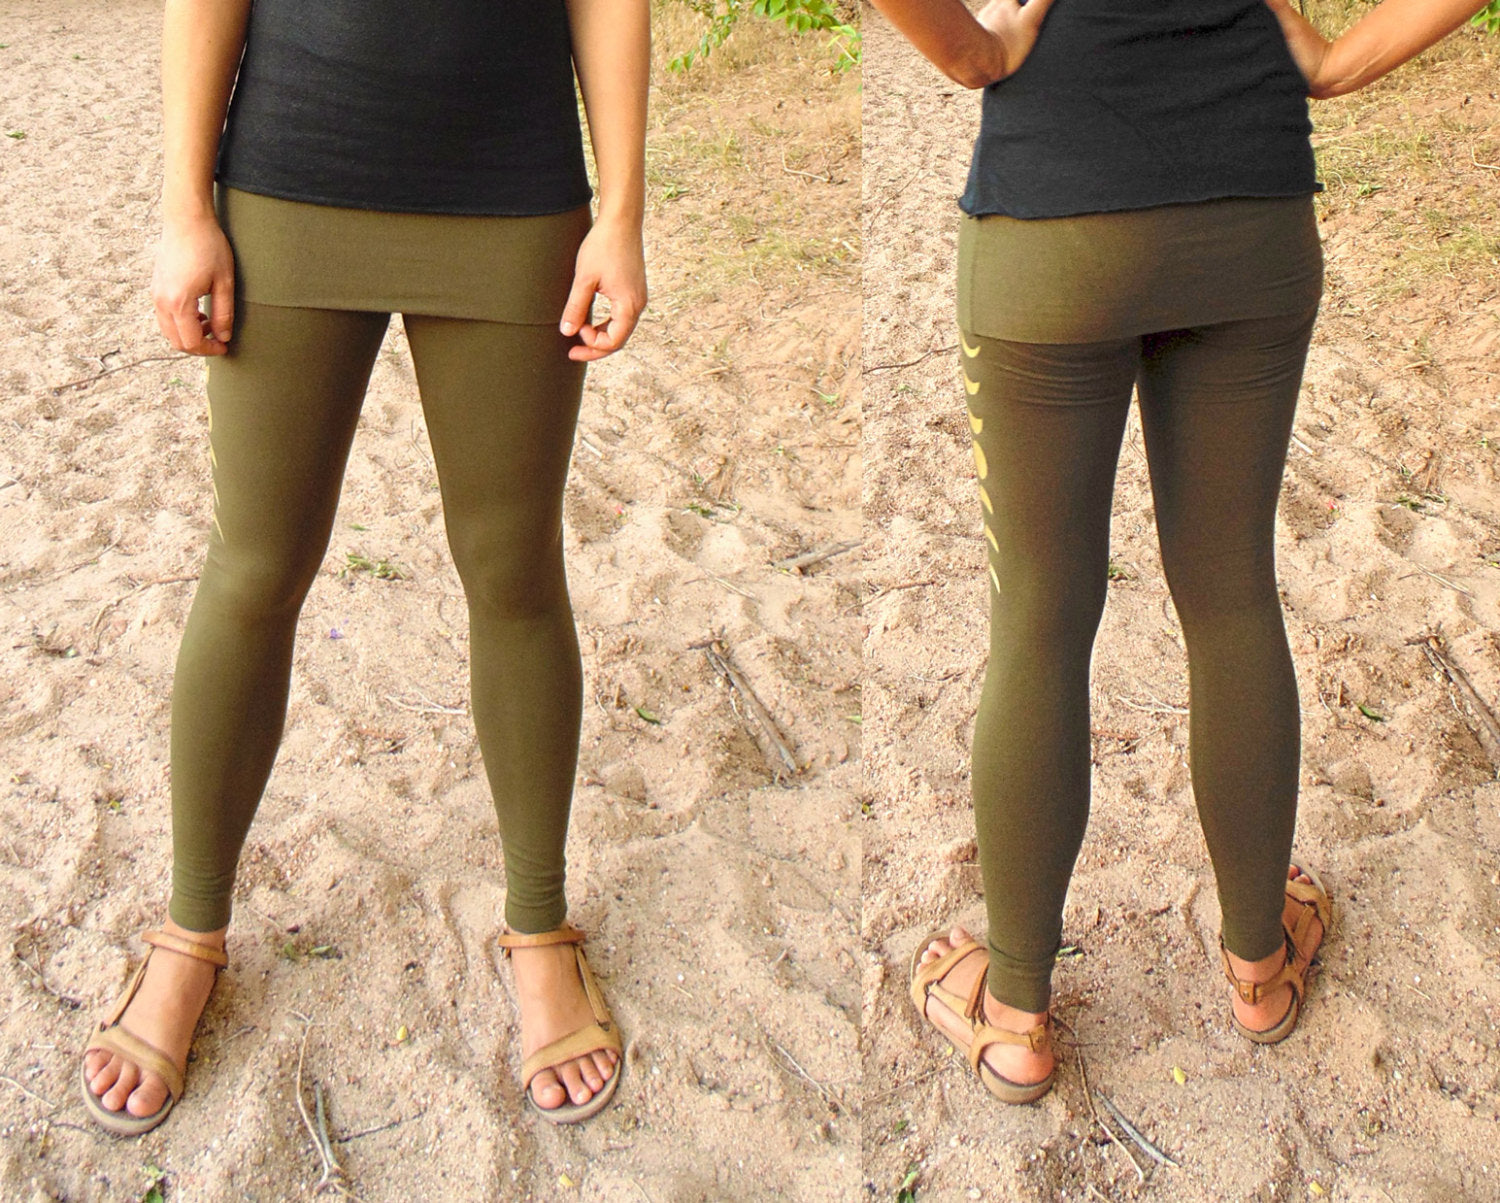 f2dbe09cc6 ... Libra Leggings: Skirted Yoga Pants with Moon Phase Screenprints. Fitted  lunar cycle leggings ...